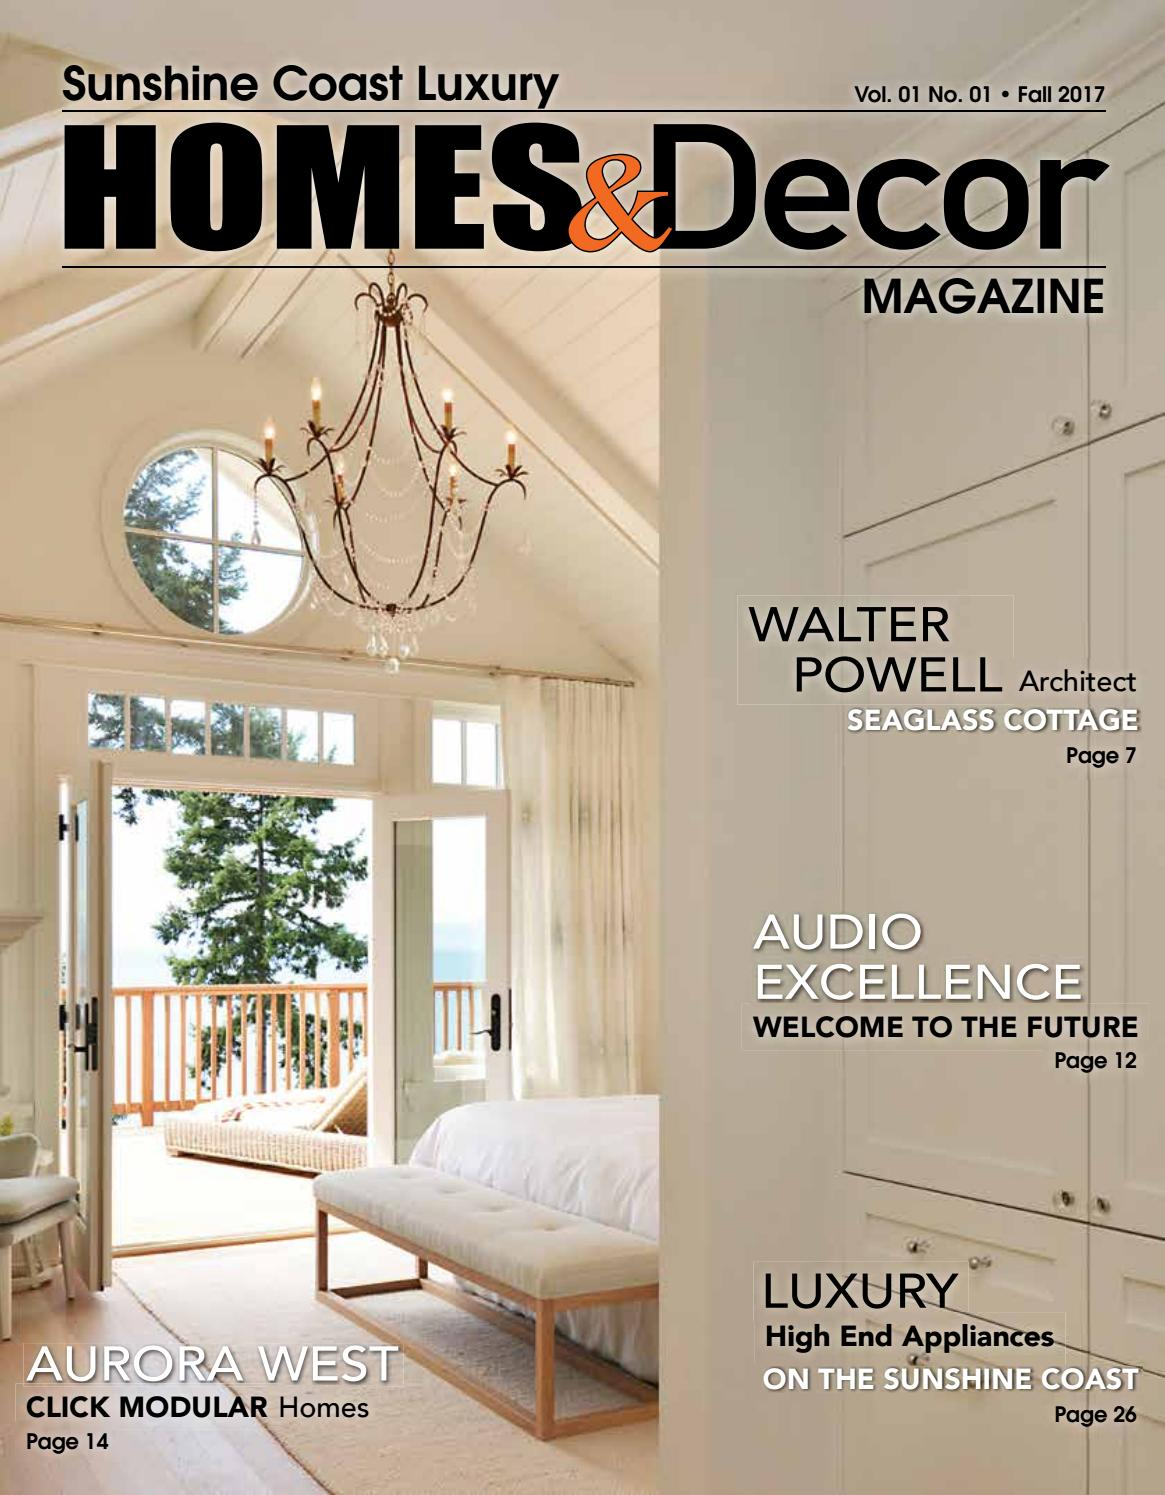 Sunshine coast luxury homes decor 2017 by the local issuu for Luxury home design magazine